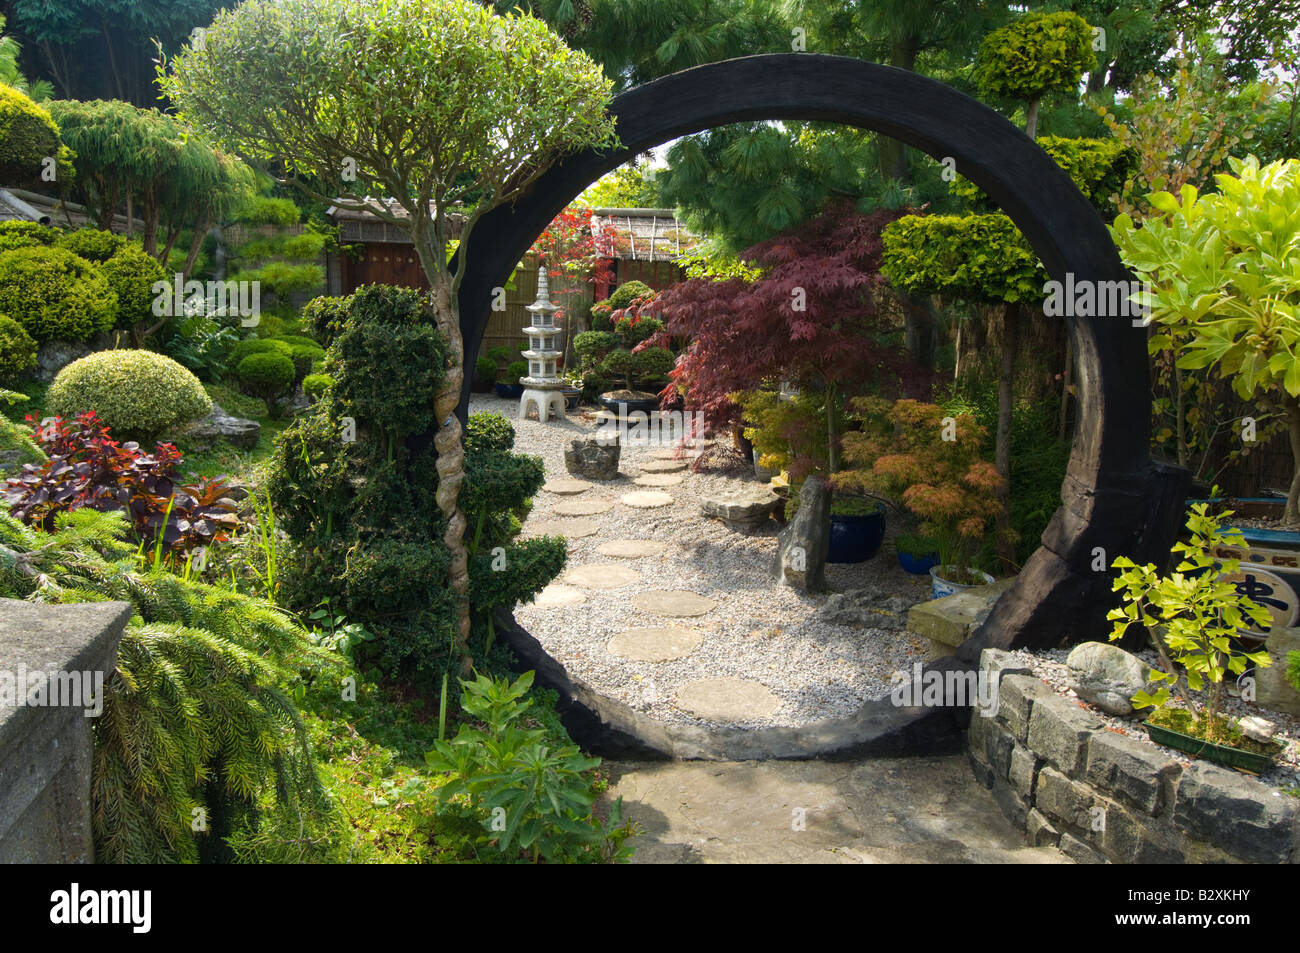 Japanese Style Garden With Moon Gate Rocks Shrubs And Trees Design By  George Nesfield Willerby East Yorkshire England UK Europe